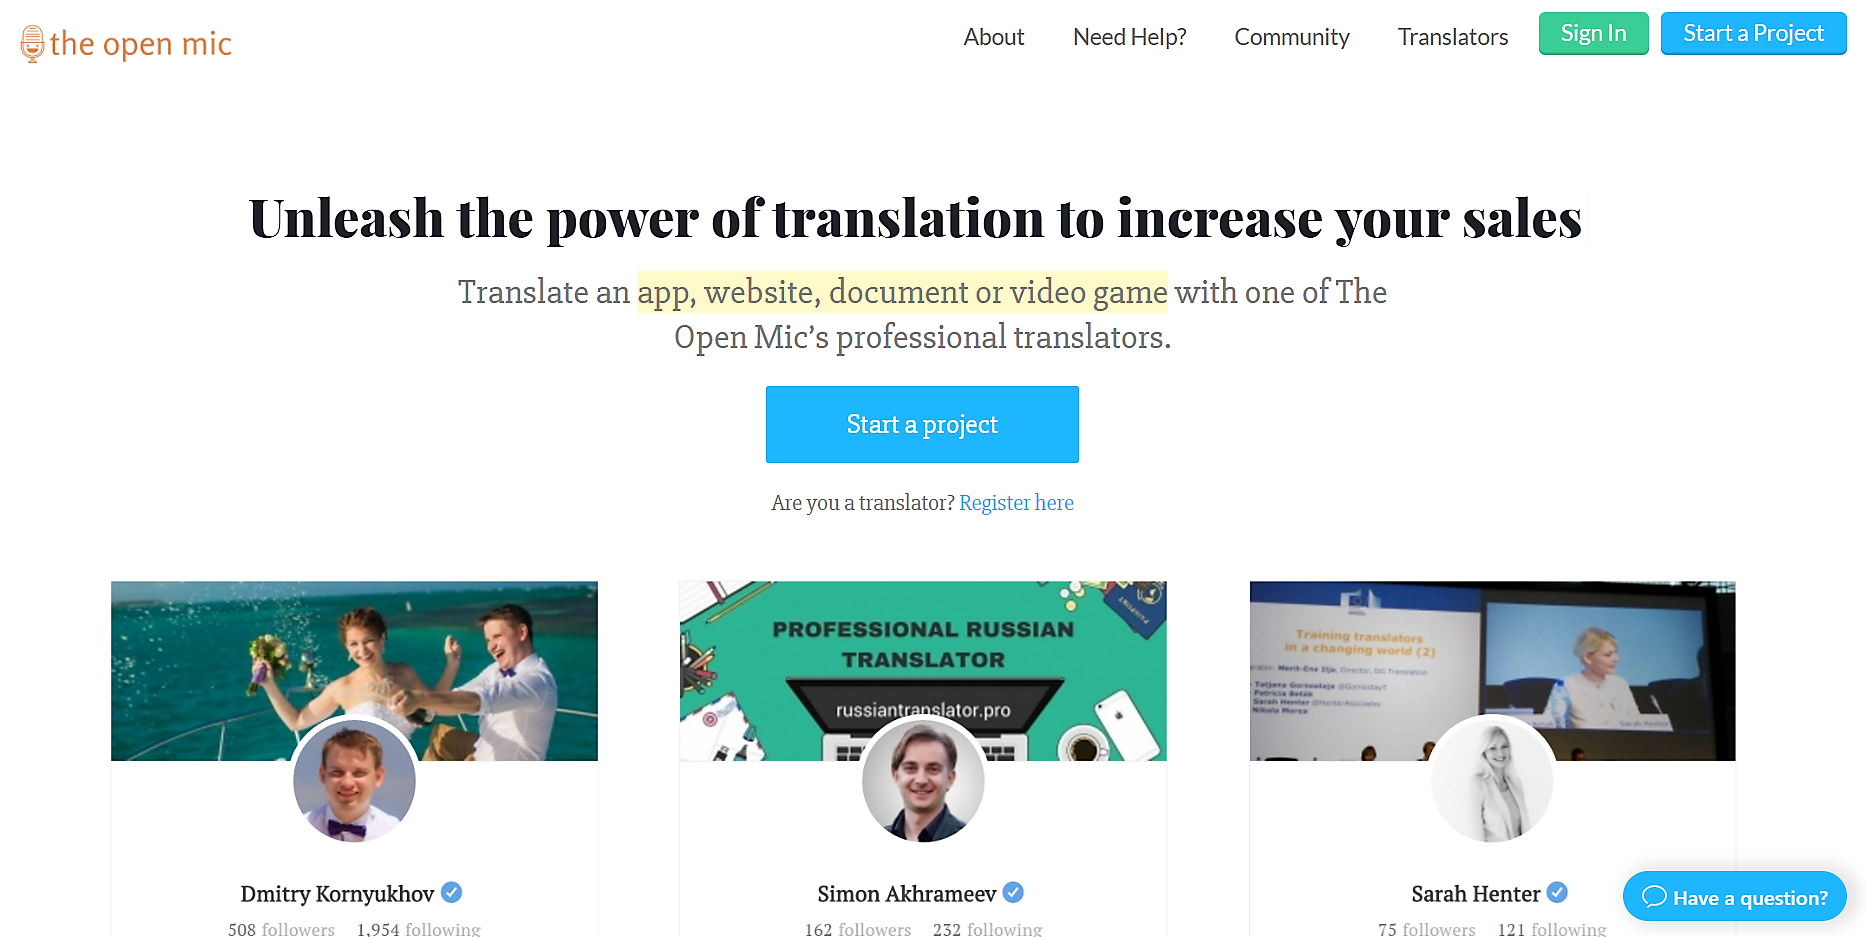 Find translators for your document, website, app, video game on The Open Mic (theopenmic.co)